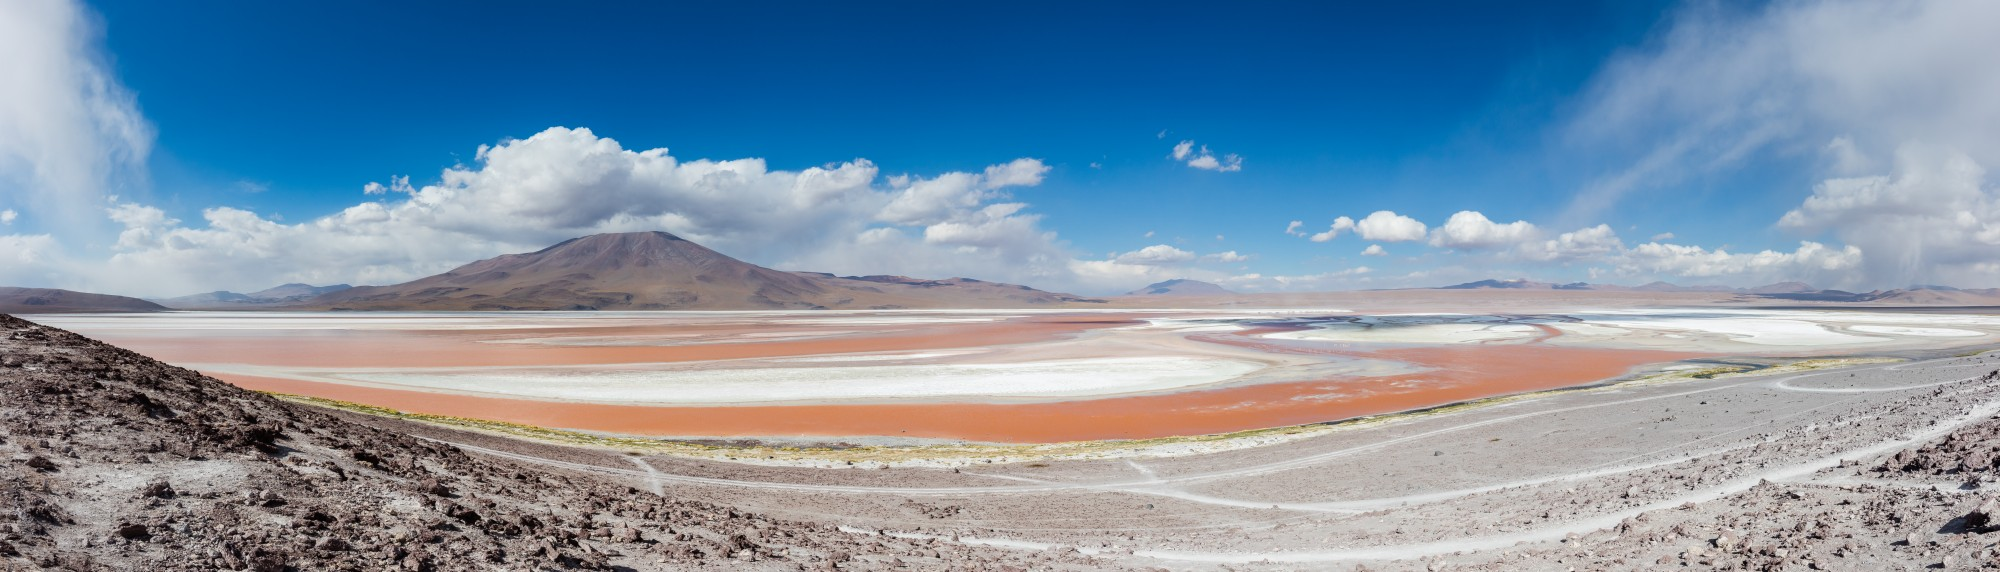 Laguna Colorada, Bolivia, 2016-02-02, DD 71-73 PAN